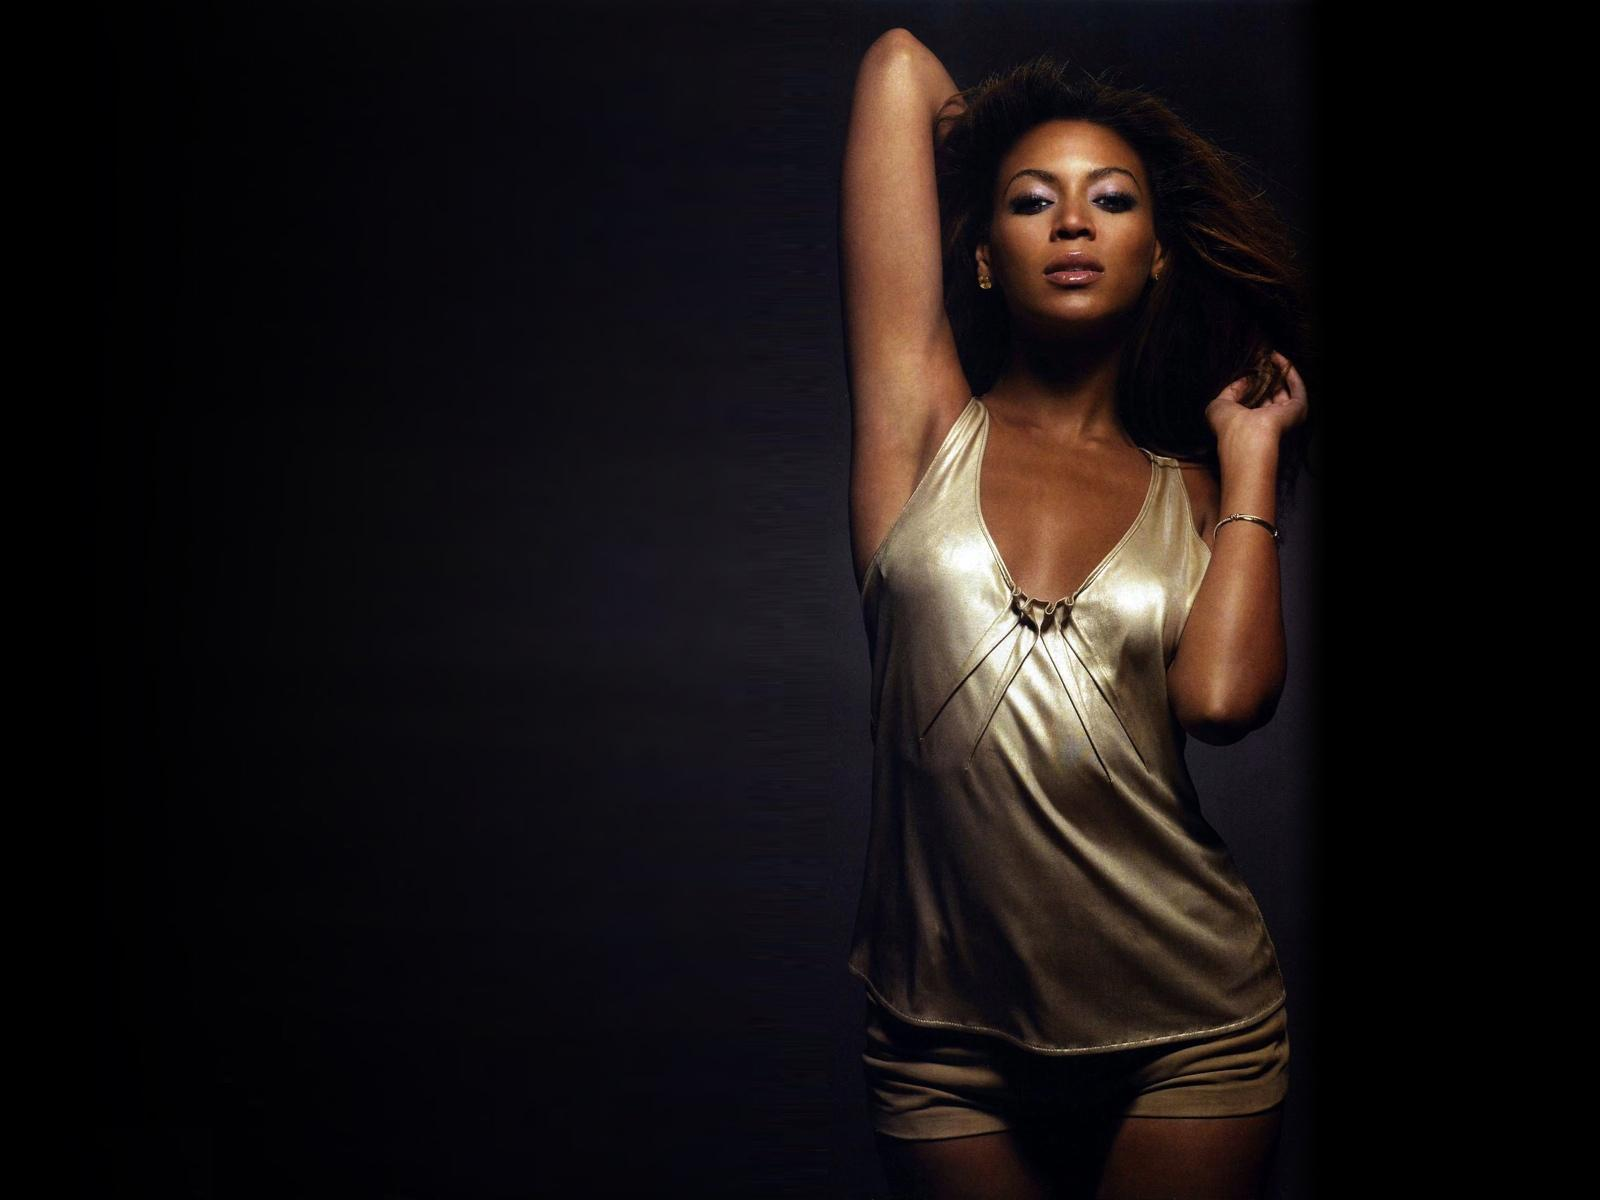 beyonce hot hd wallpapers high resolution pictures